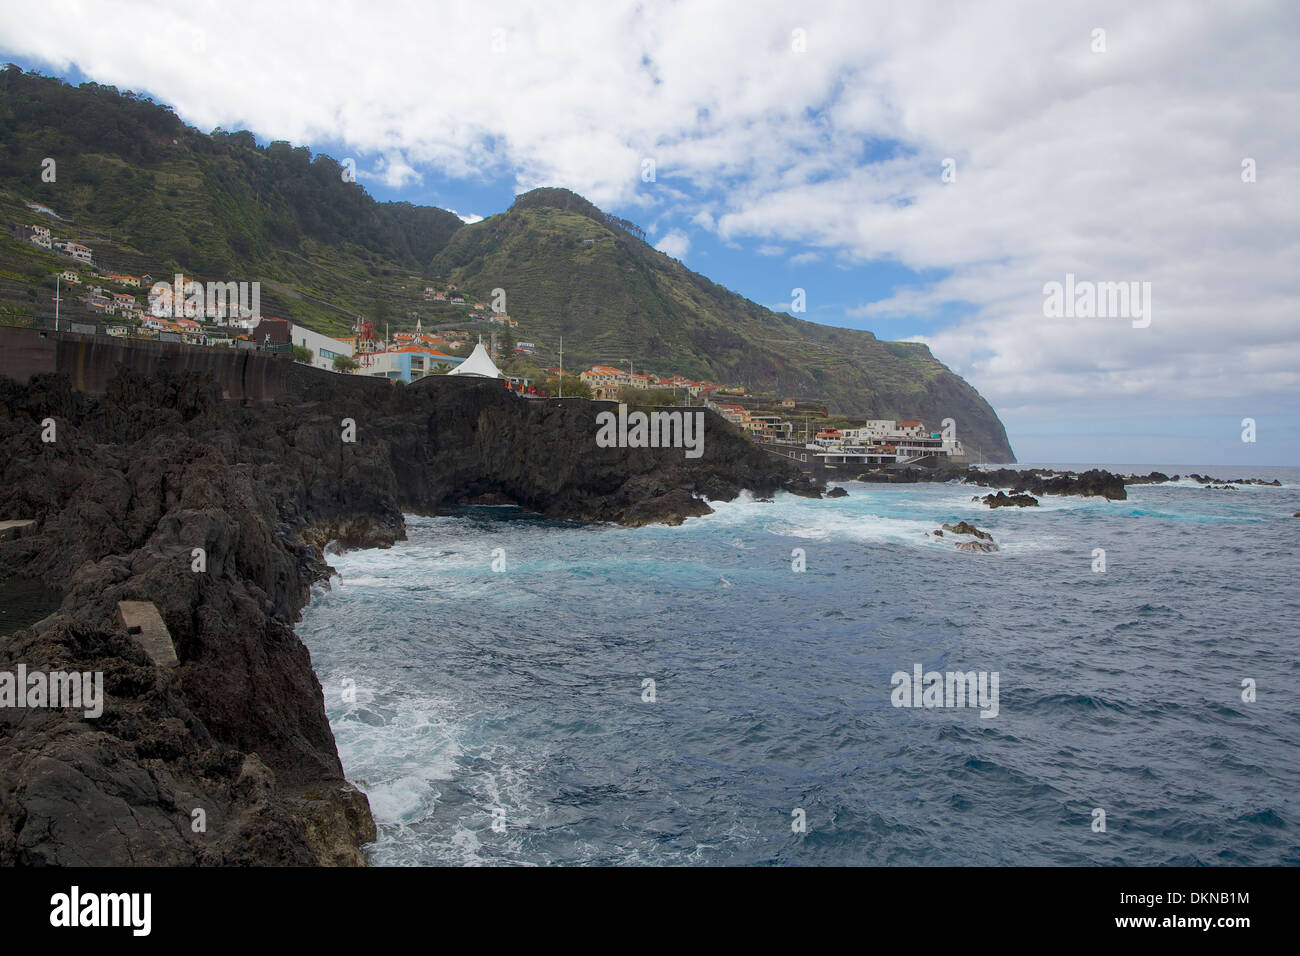 Rocks from volcanic tuff in the ocean Madeira, view of Porto Moniz - Stock Image